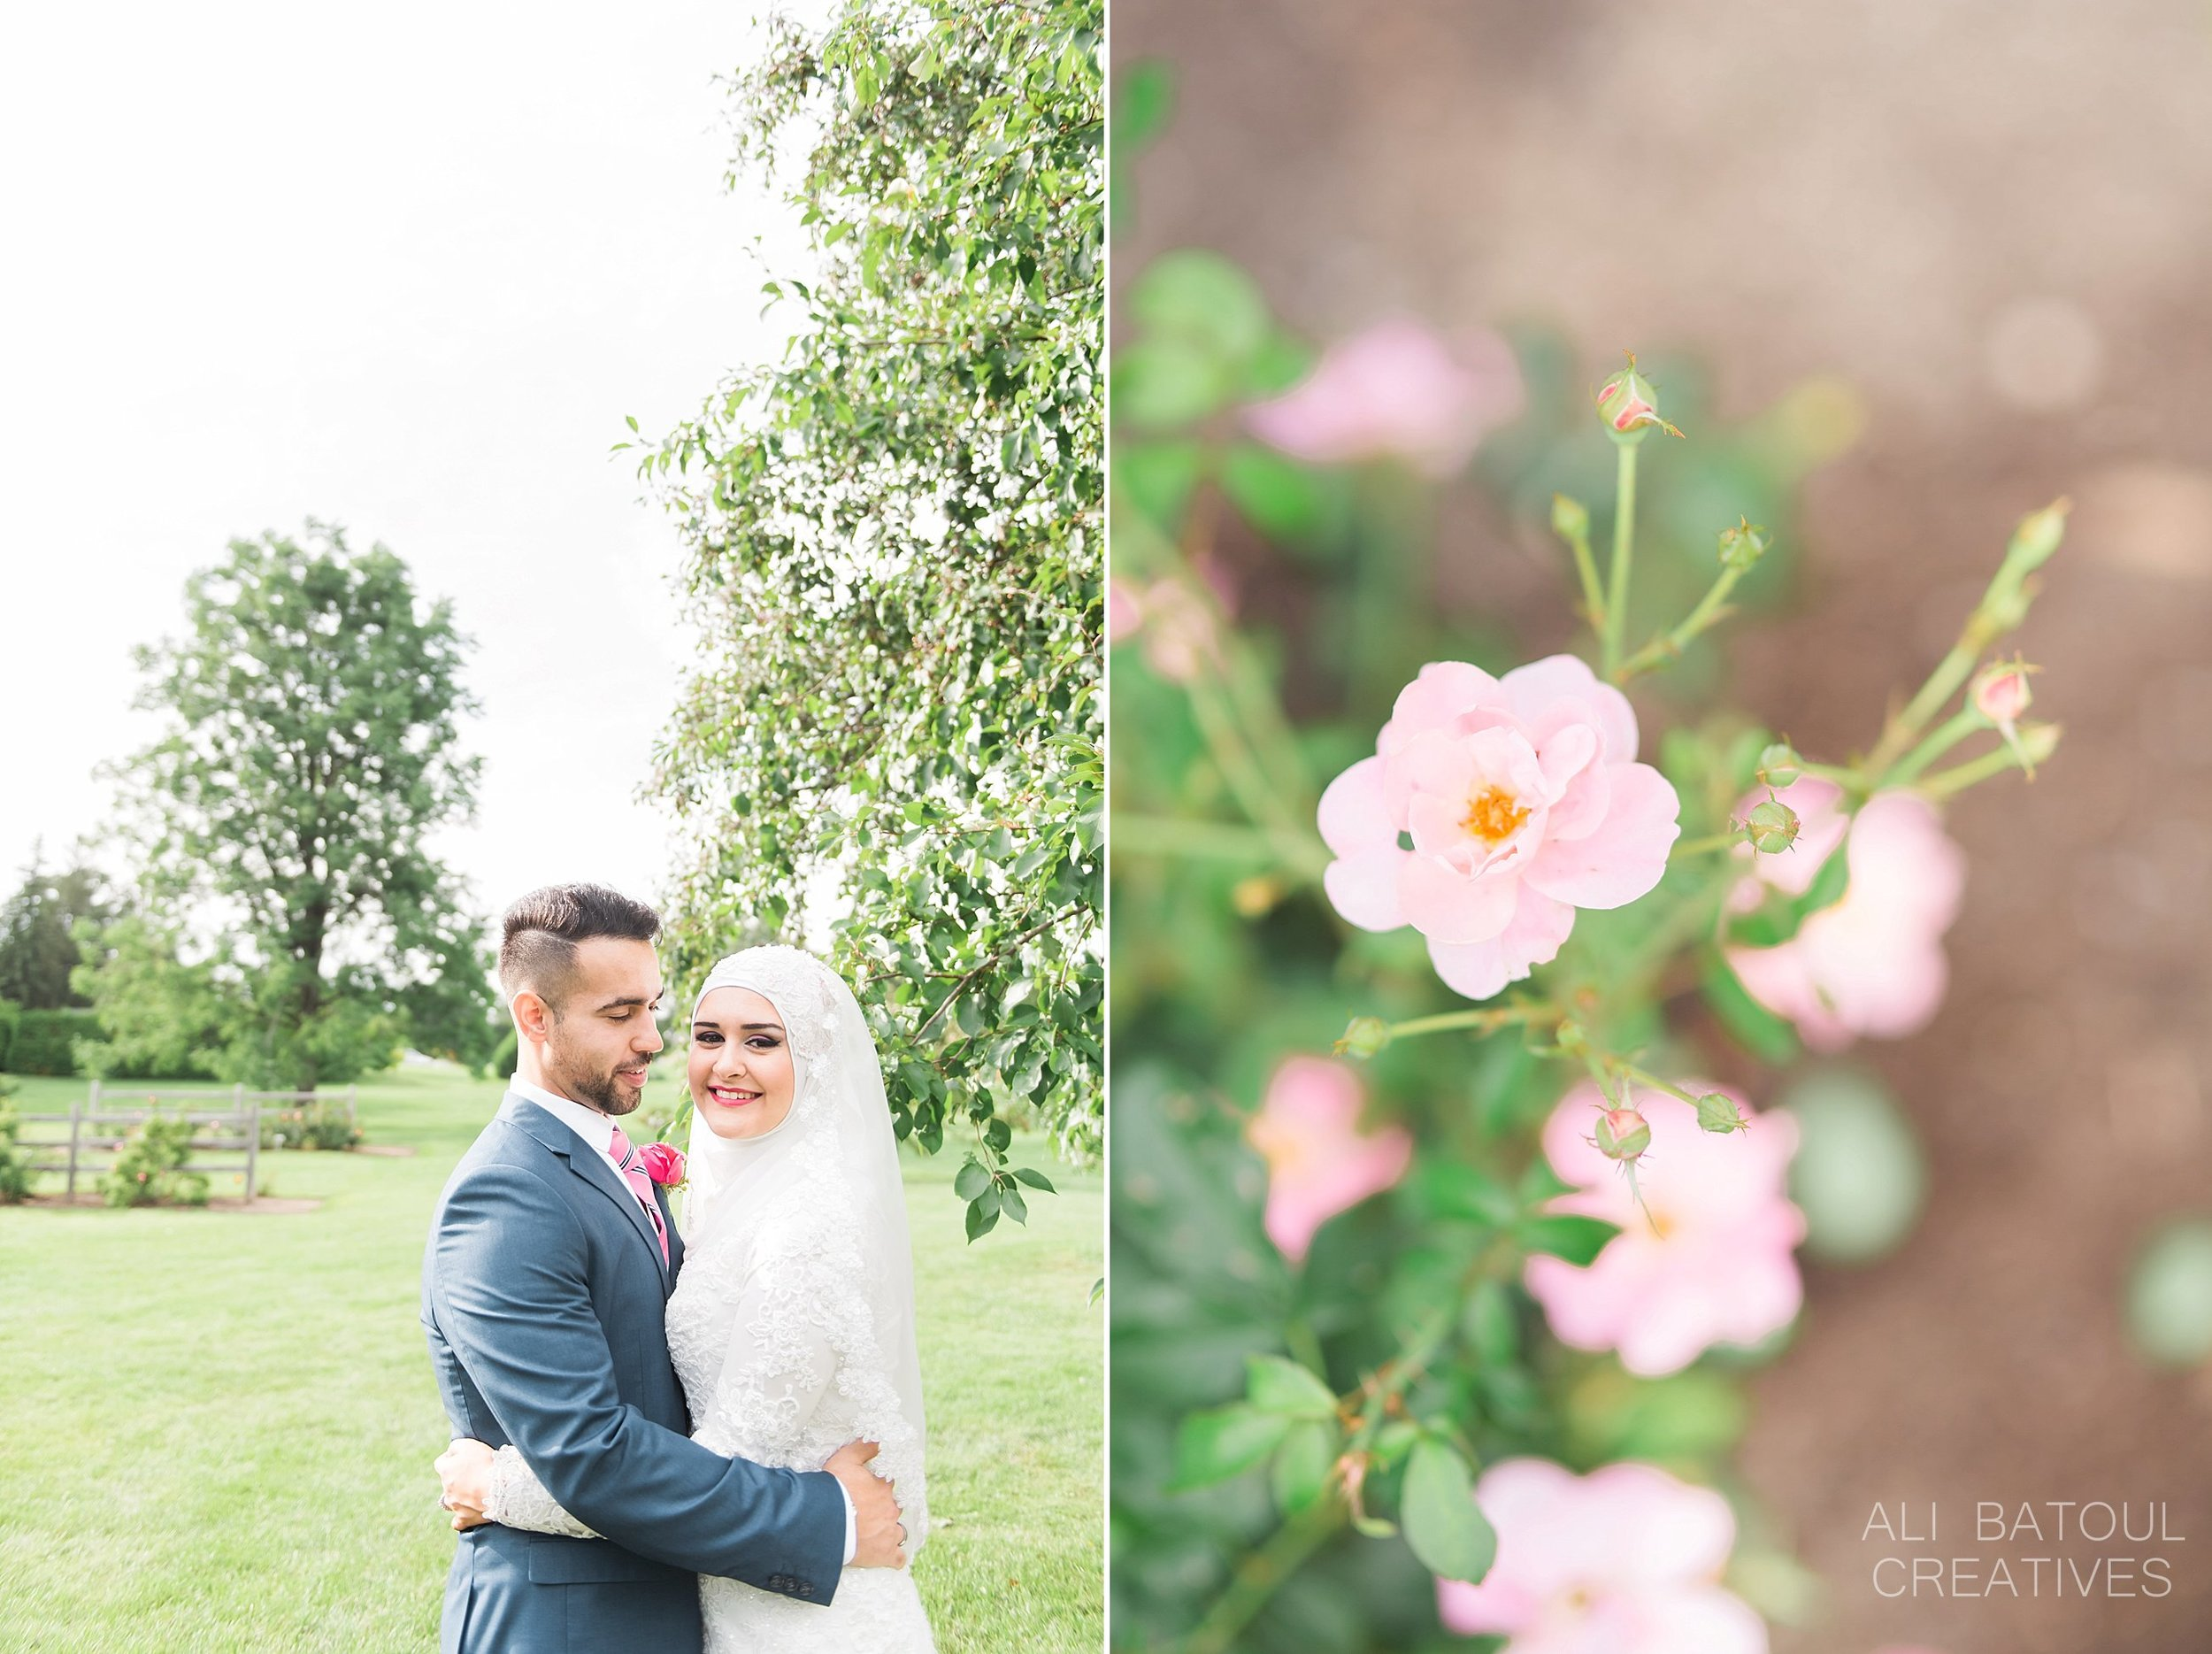 Hanan + Said - Ali Batoul Creatives Fine Art Wedding Photography_0276.jpg